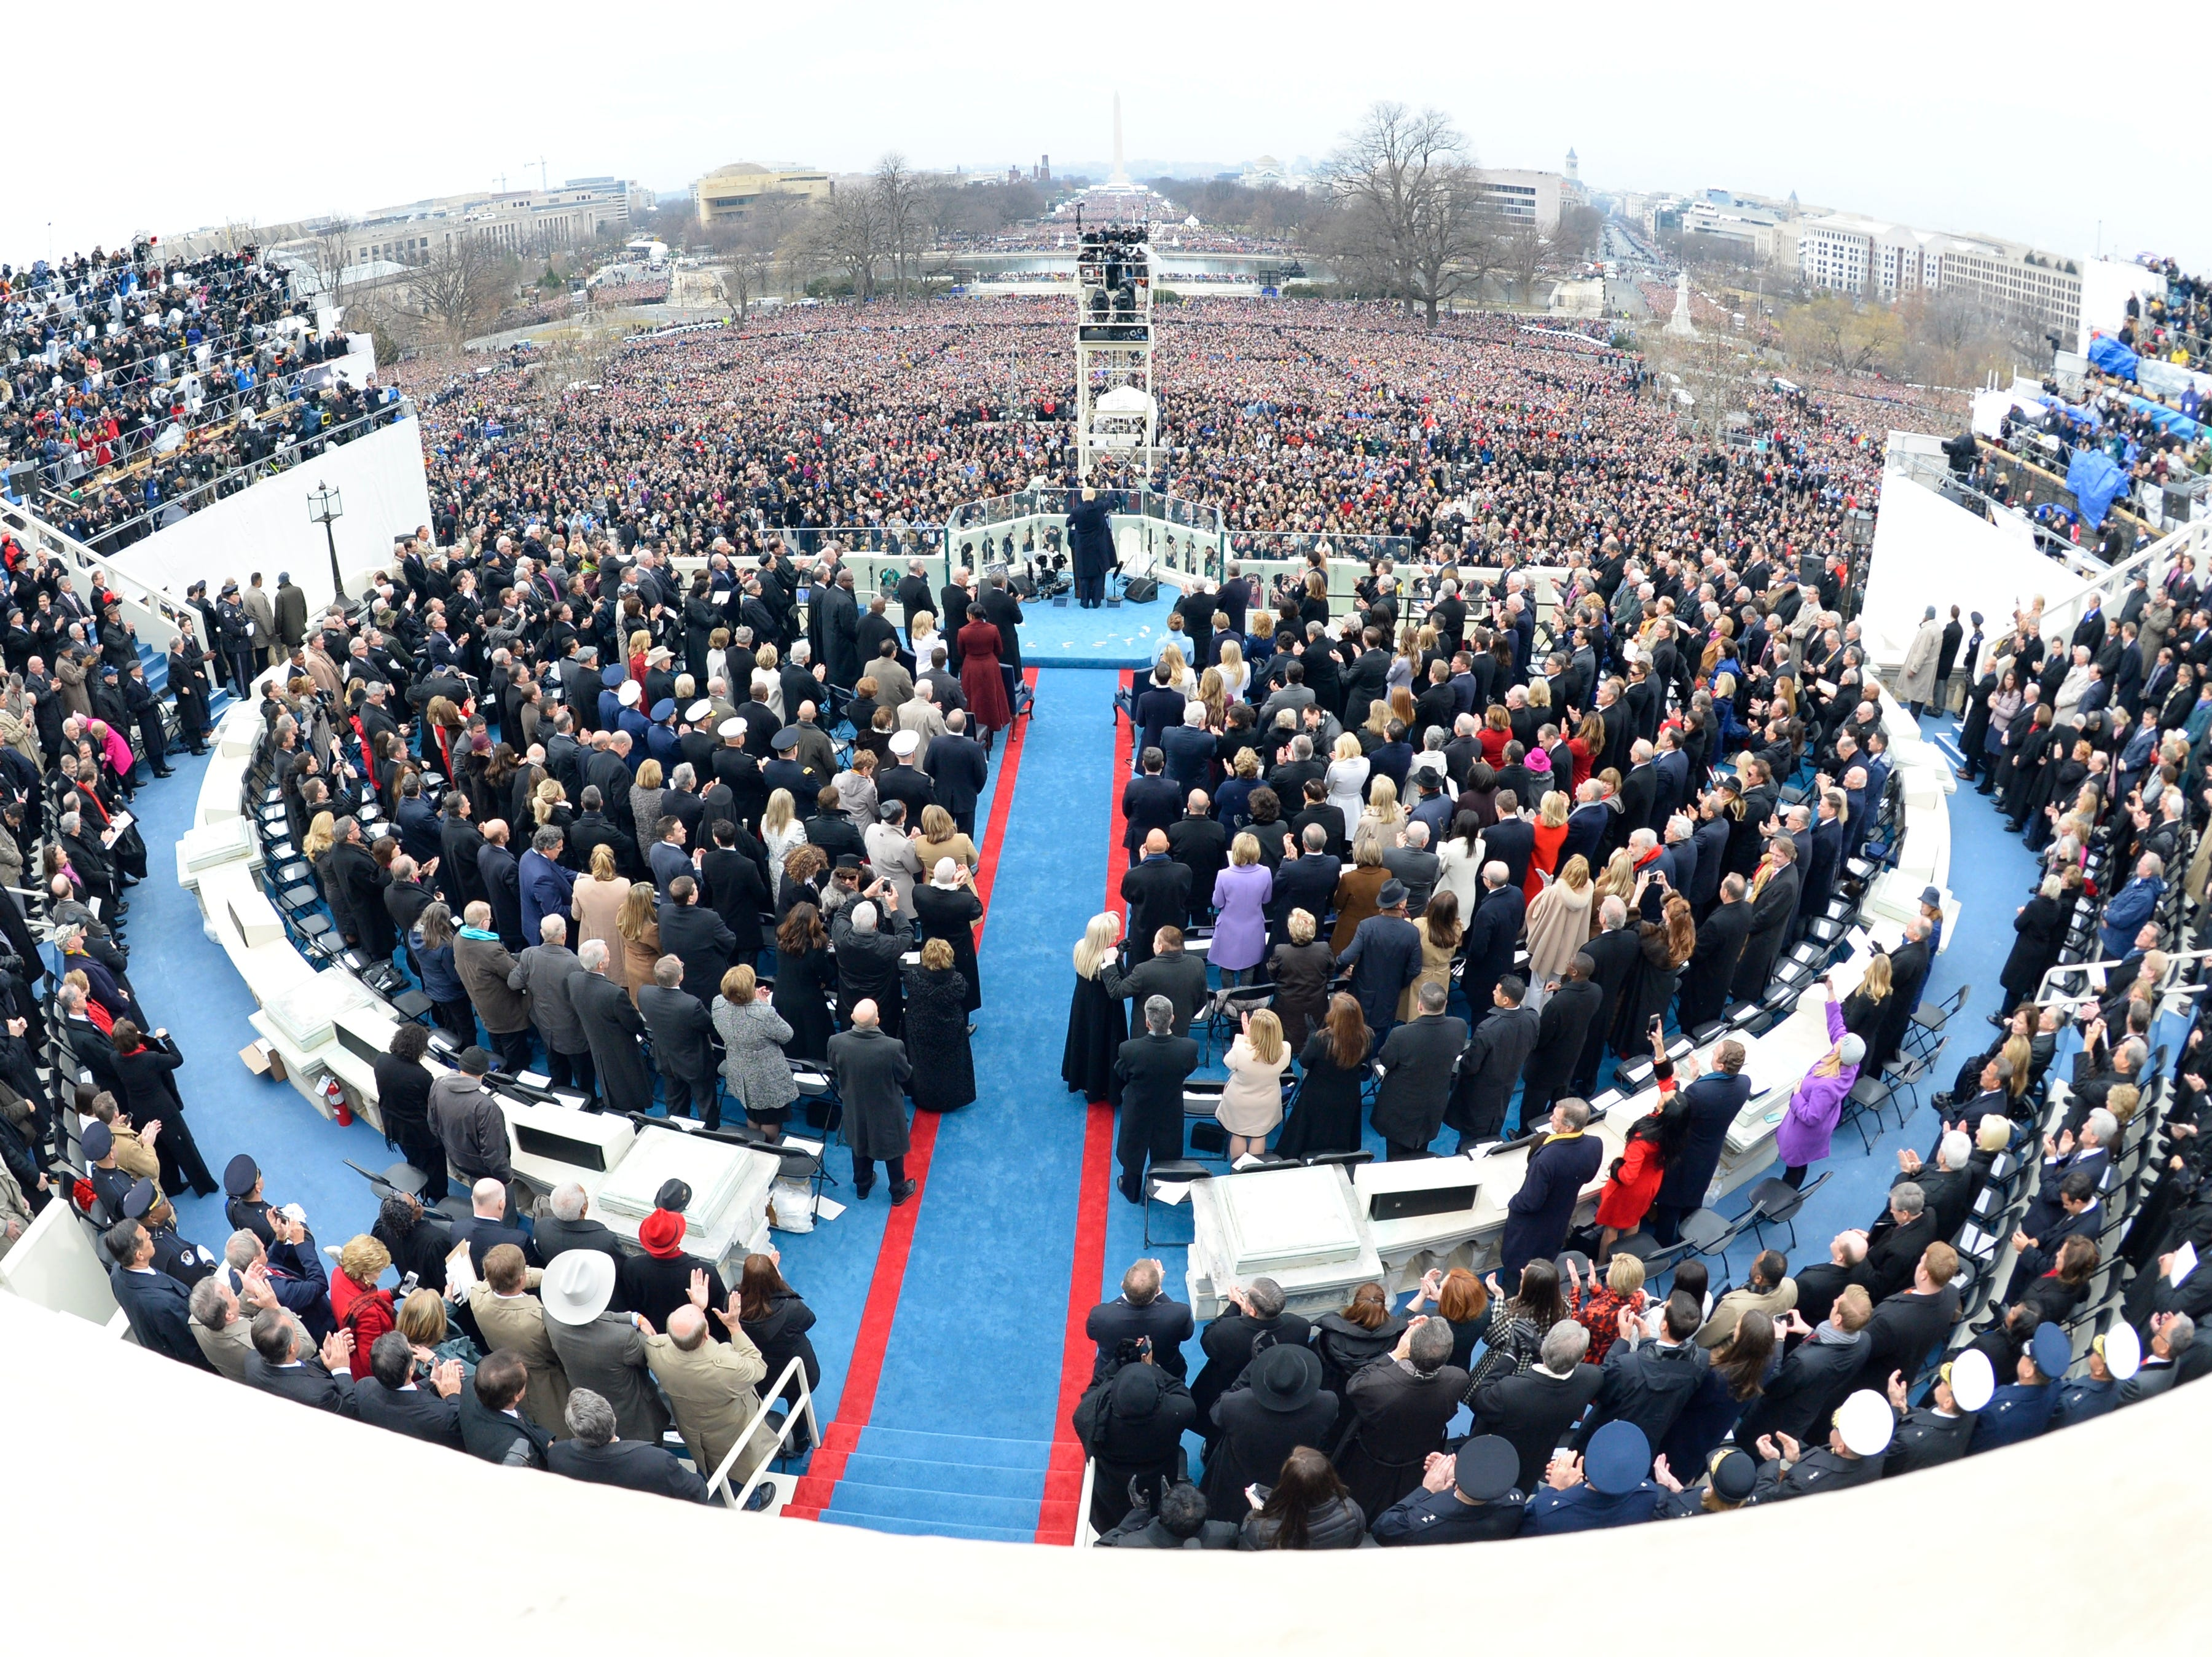 President Donald Trump speaks during the 2017 Presidential Inauguration at the U.S. Capitol on Jan 20, 2017.